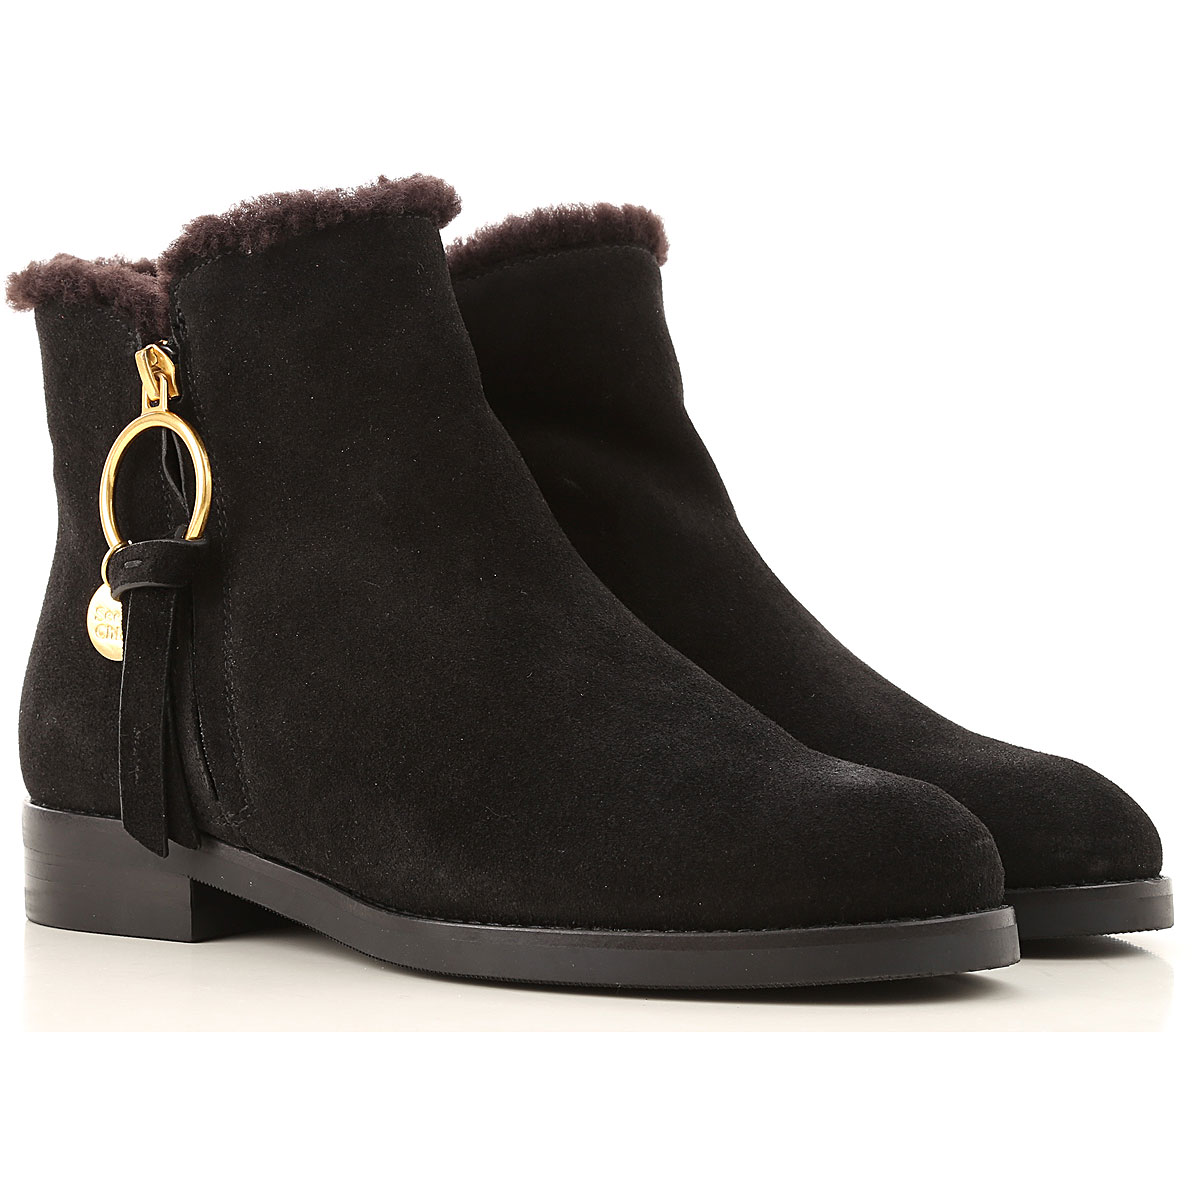 See By Chloe Boots for Women, Booties, Black, Suede leather, 2019, 6 7